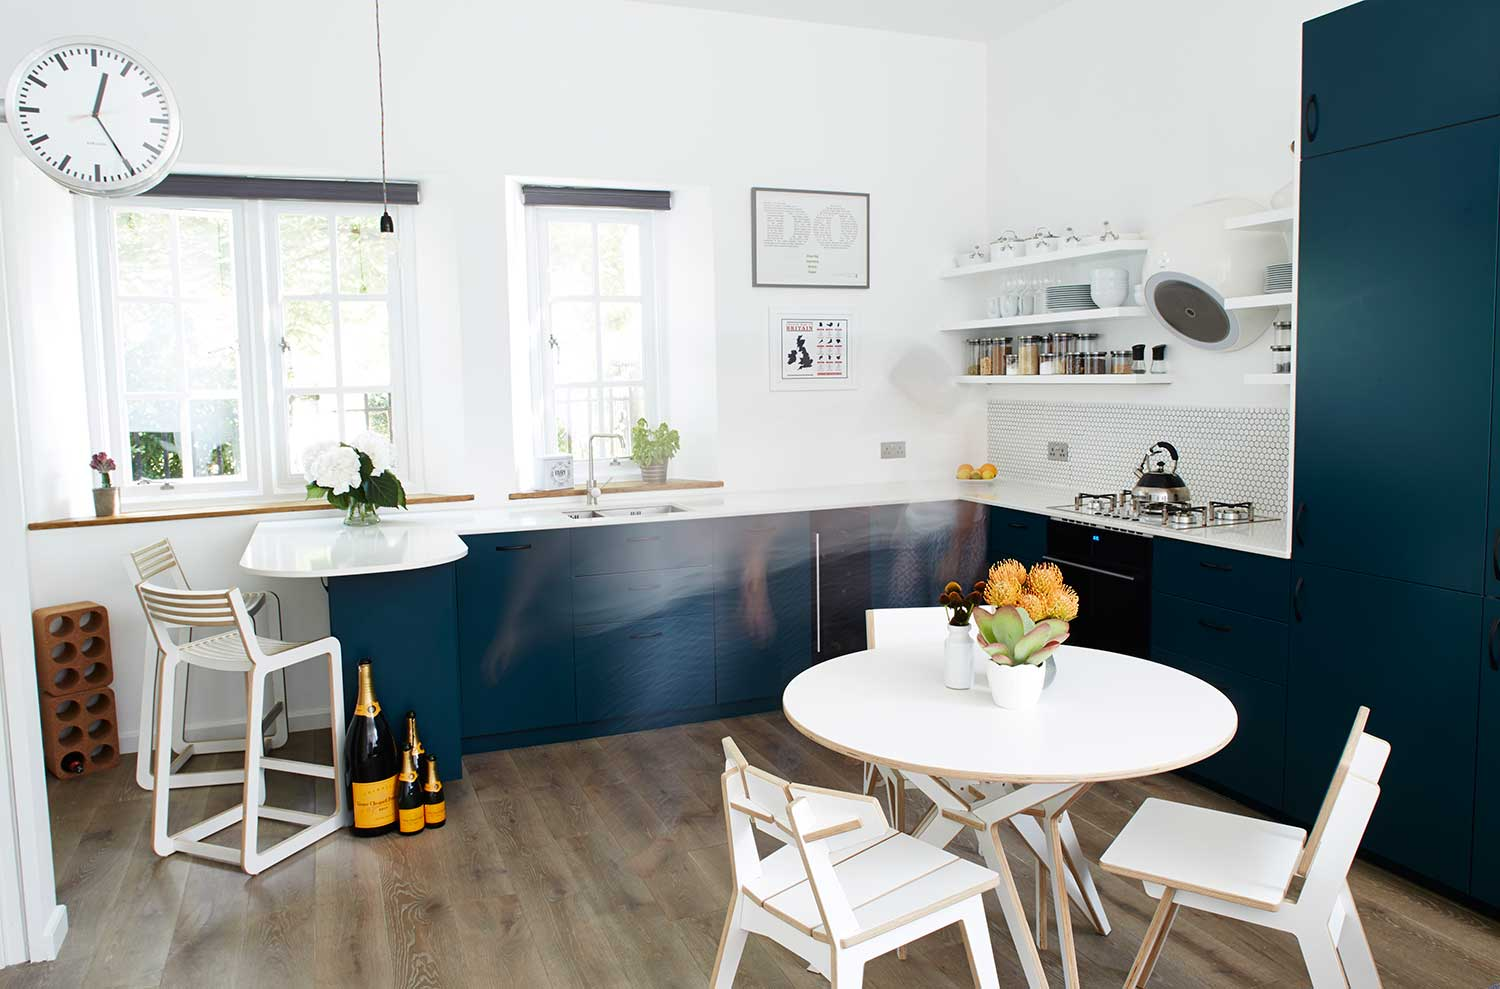 Cassidy_Hughes_Design_Kitchen_Teal_Elica_Bubble_London